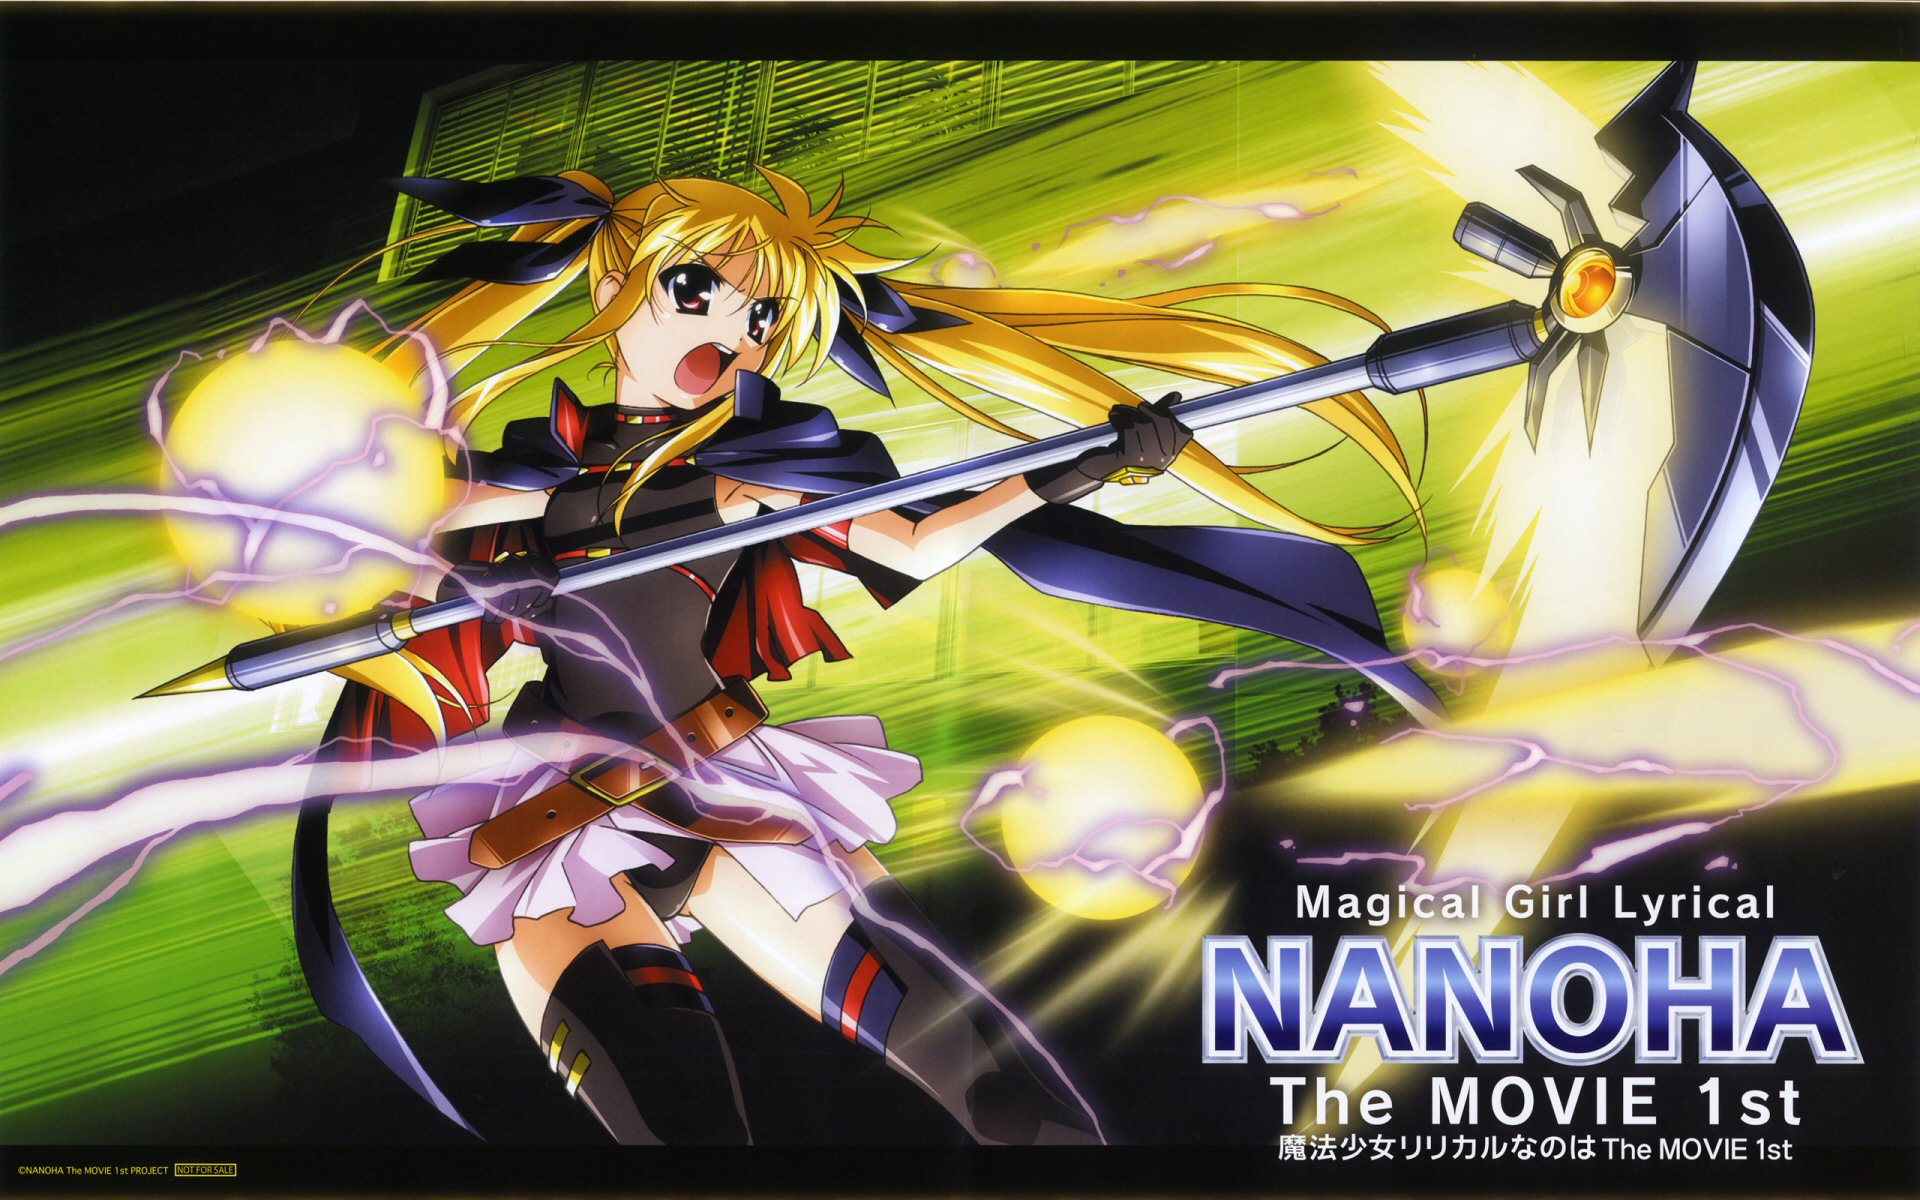 Magical Girl Lyrical Nanoha Wallpapers 37 images   DodoWallpaper 1920x1200